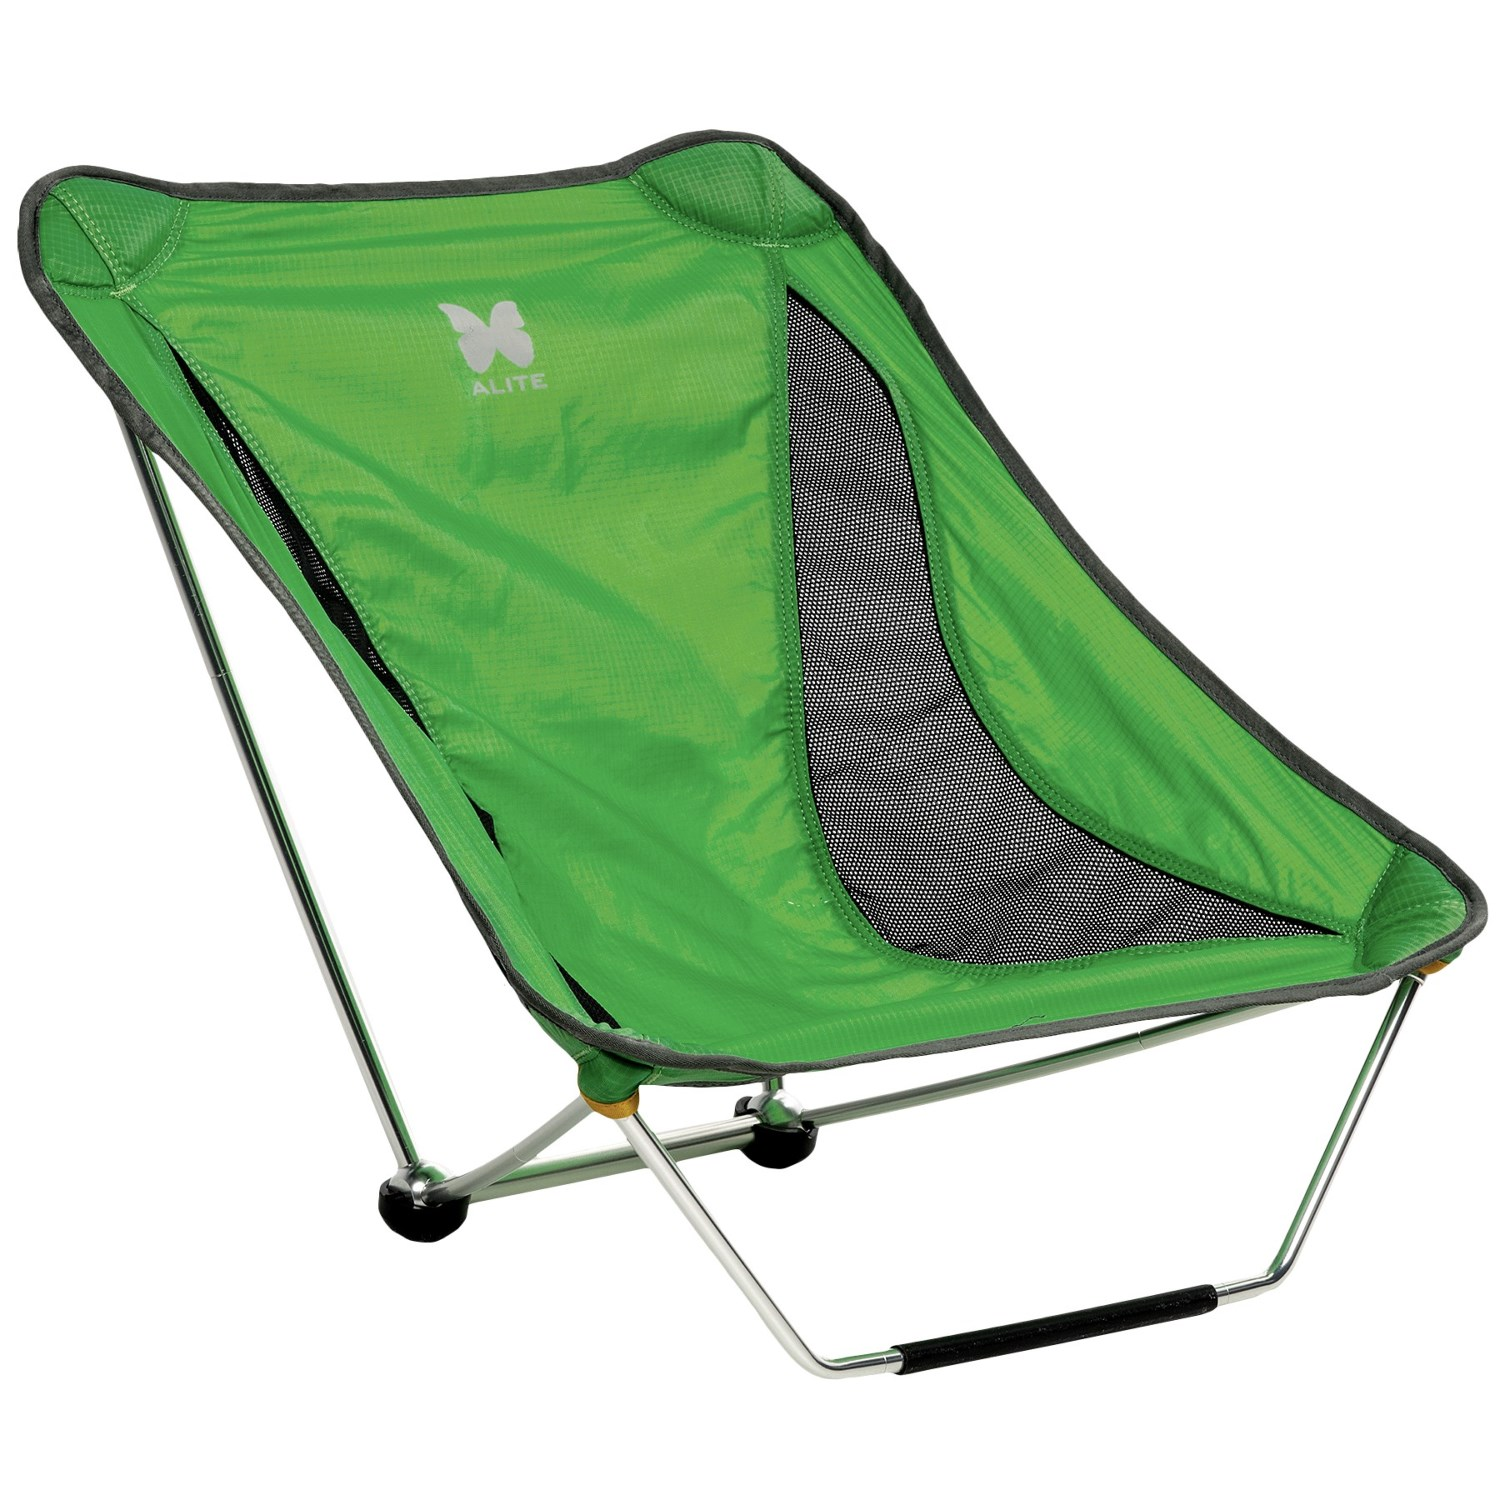 Alite Designs Mayfly 20 Camp Chair 106NY Save 50